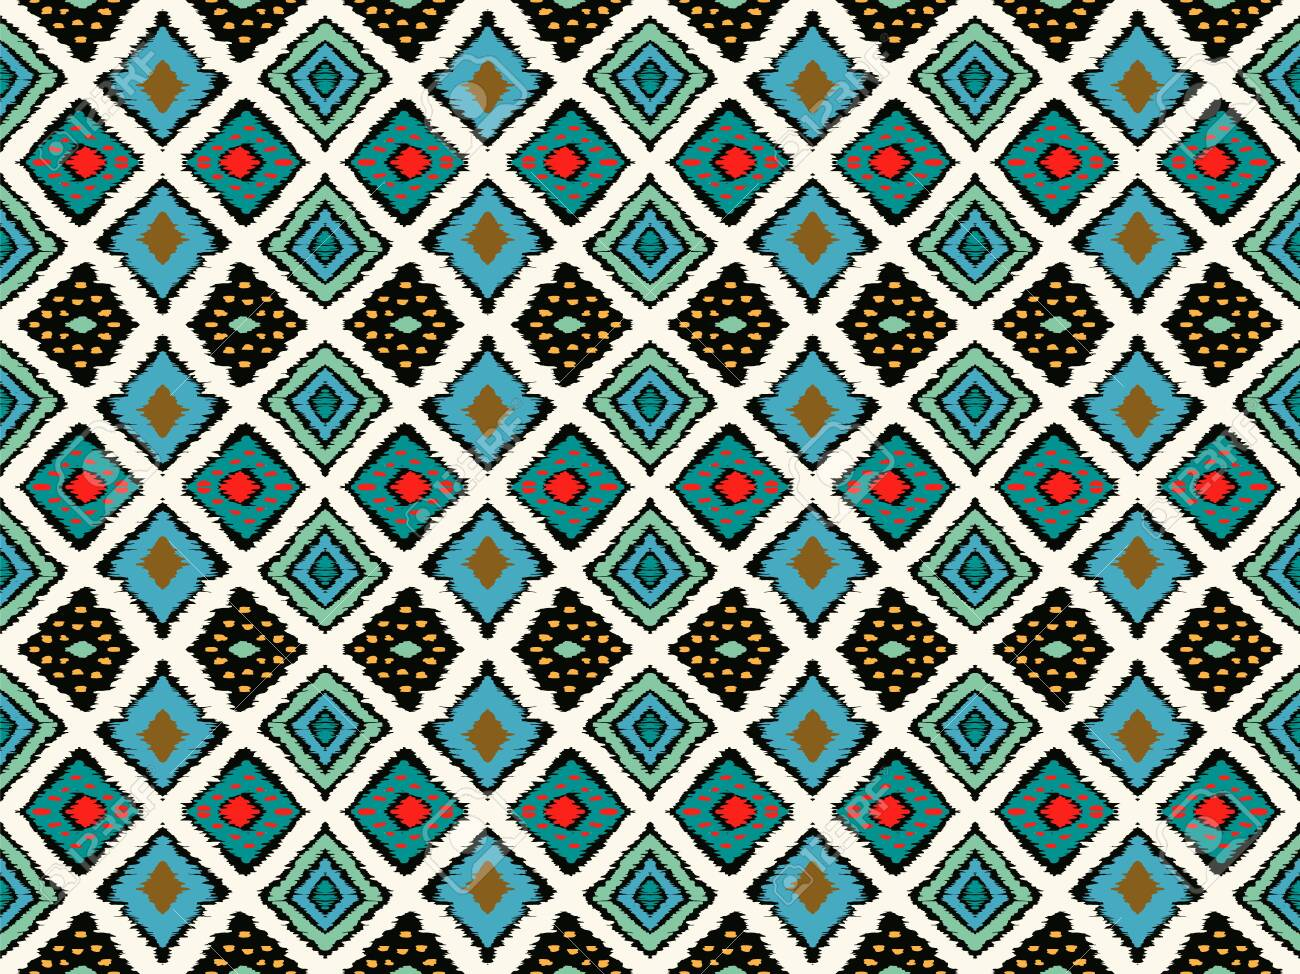 Ikat geometric folklore ornament with diamonds. Tribal ethnic vector texture. Seamless striped pattern in Aztec style. Folk embroidery. Indian, Scandinavian, Gypsy, Mexican, African rug. - 128373961